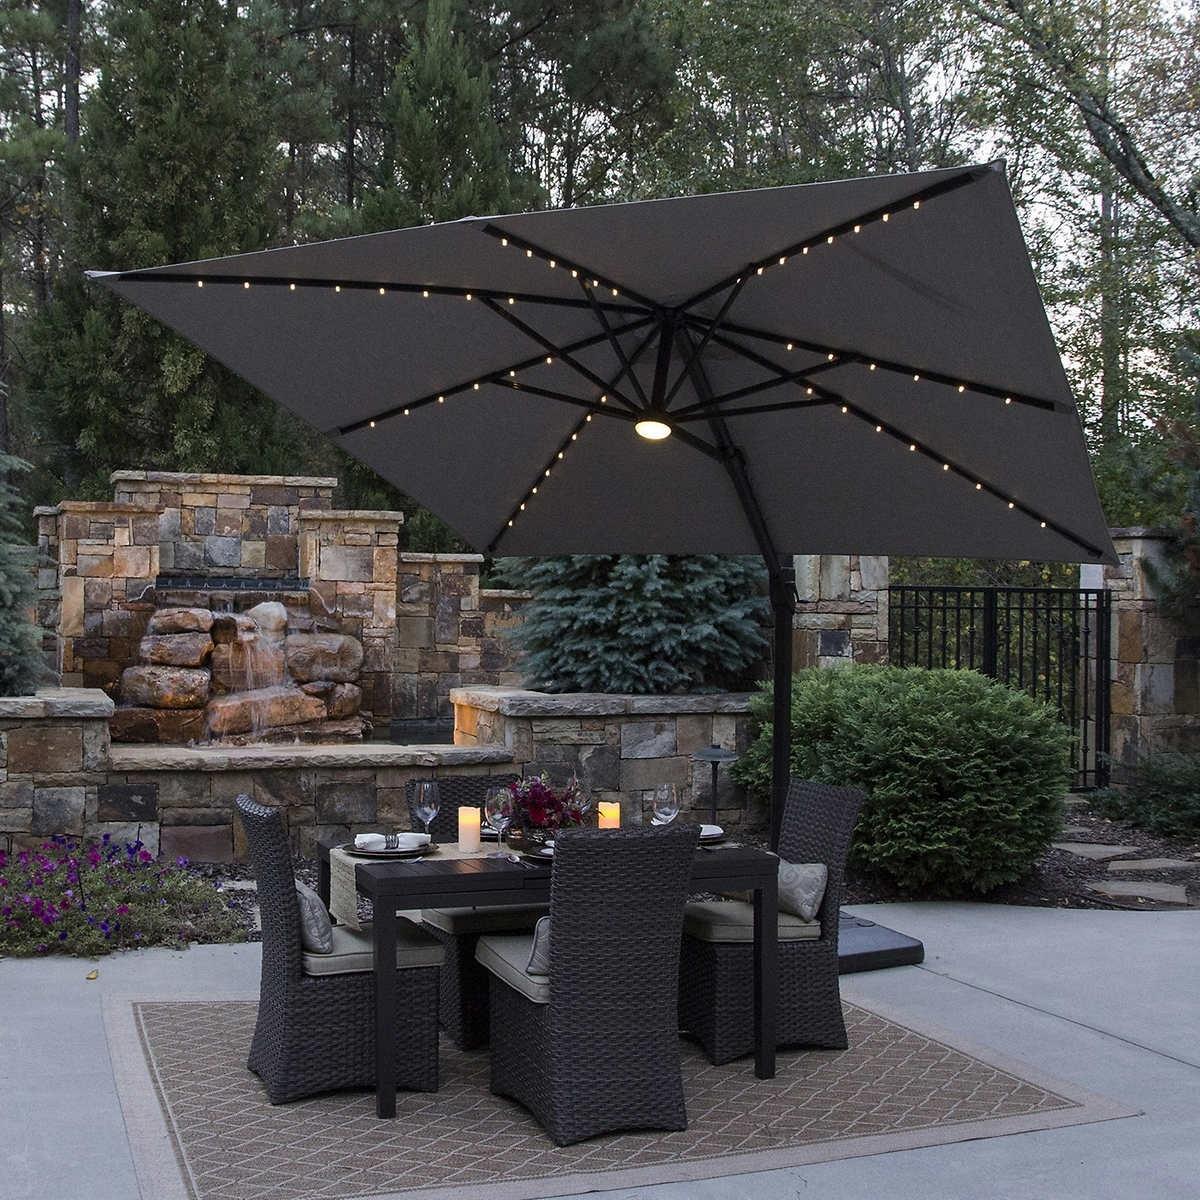 Newest Costco Outdoor Patio Umbrellas Fresh Umbrella Concept Modern And With Patio Umbrellas At Costco (View 8 of 20)